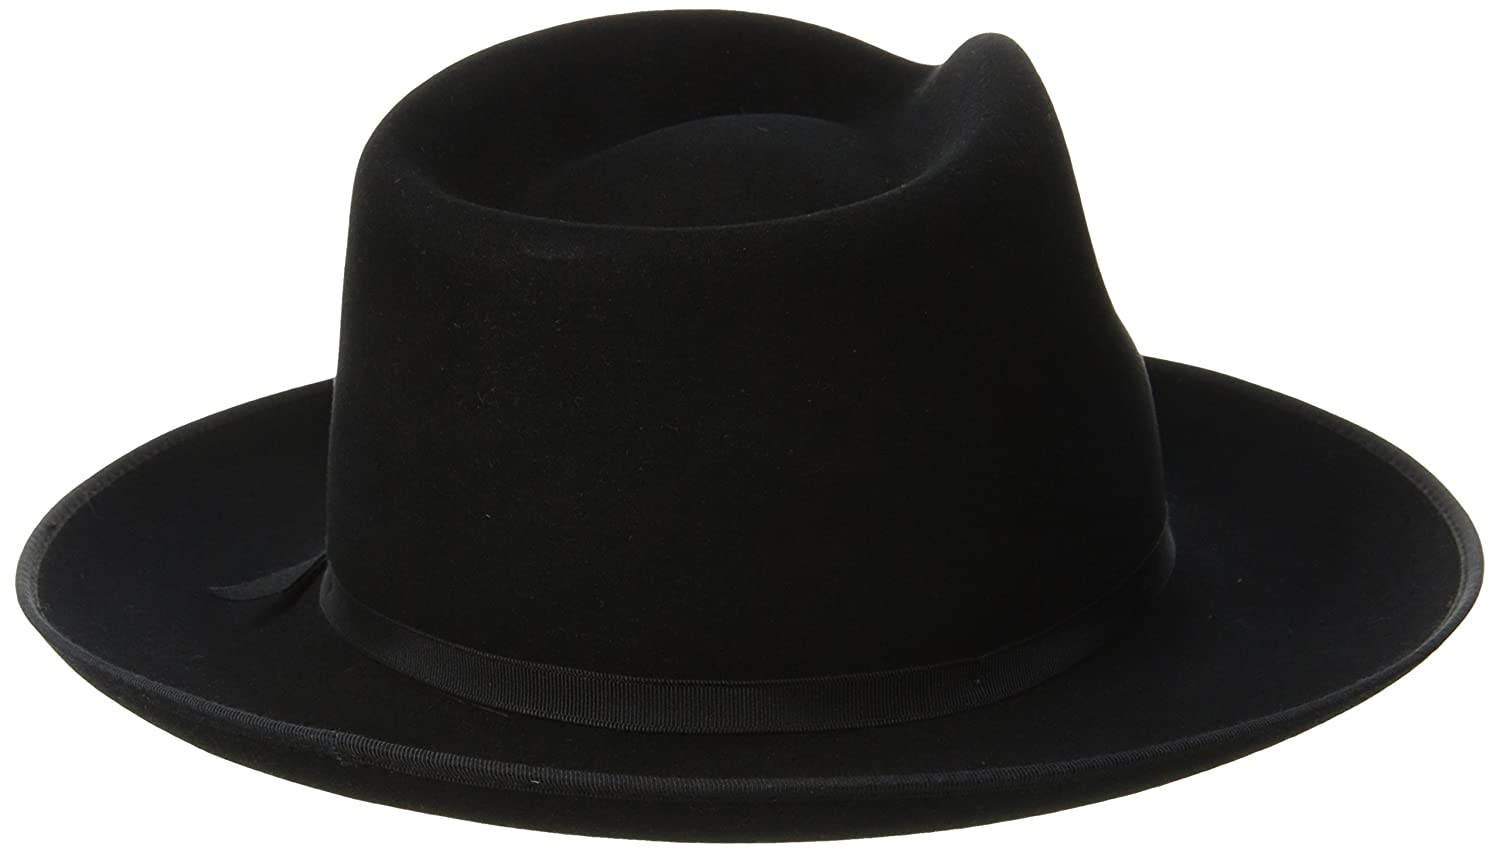 750181a939da7 Stetson Men s Stratoliner Royal Quality Fur Felt Hat at Amazon Men s  Clothing store